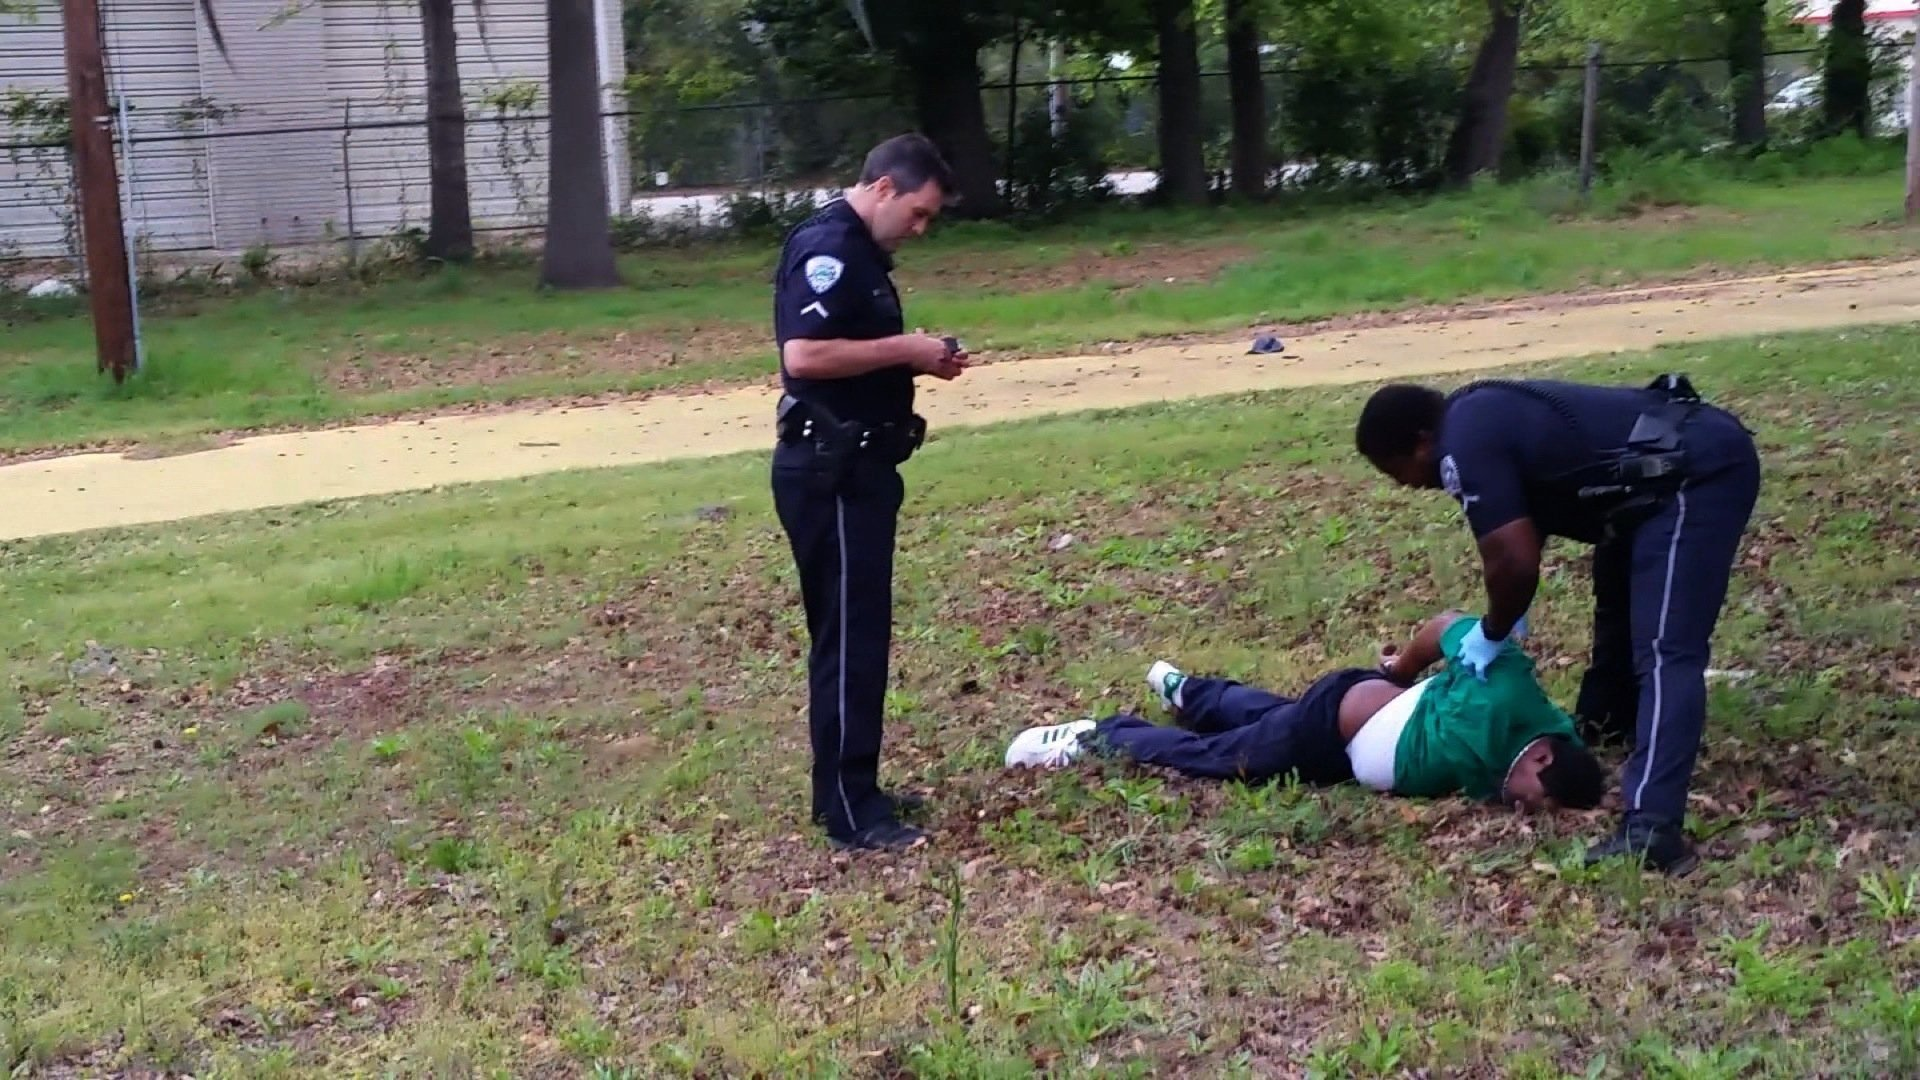 """A federal judge said Thursday, December 7, 2017, that the """"appropriate underlying offense"""" for the former South Carolina police officer who killed unarmed black man Walter Scott is second-degree murder and suggested a sentence of 19 to 24 years in prison."""